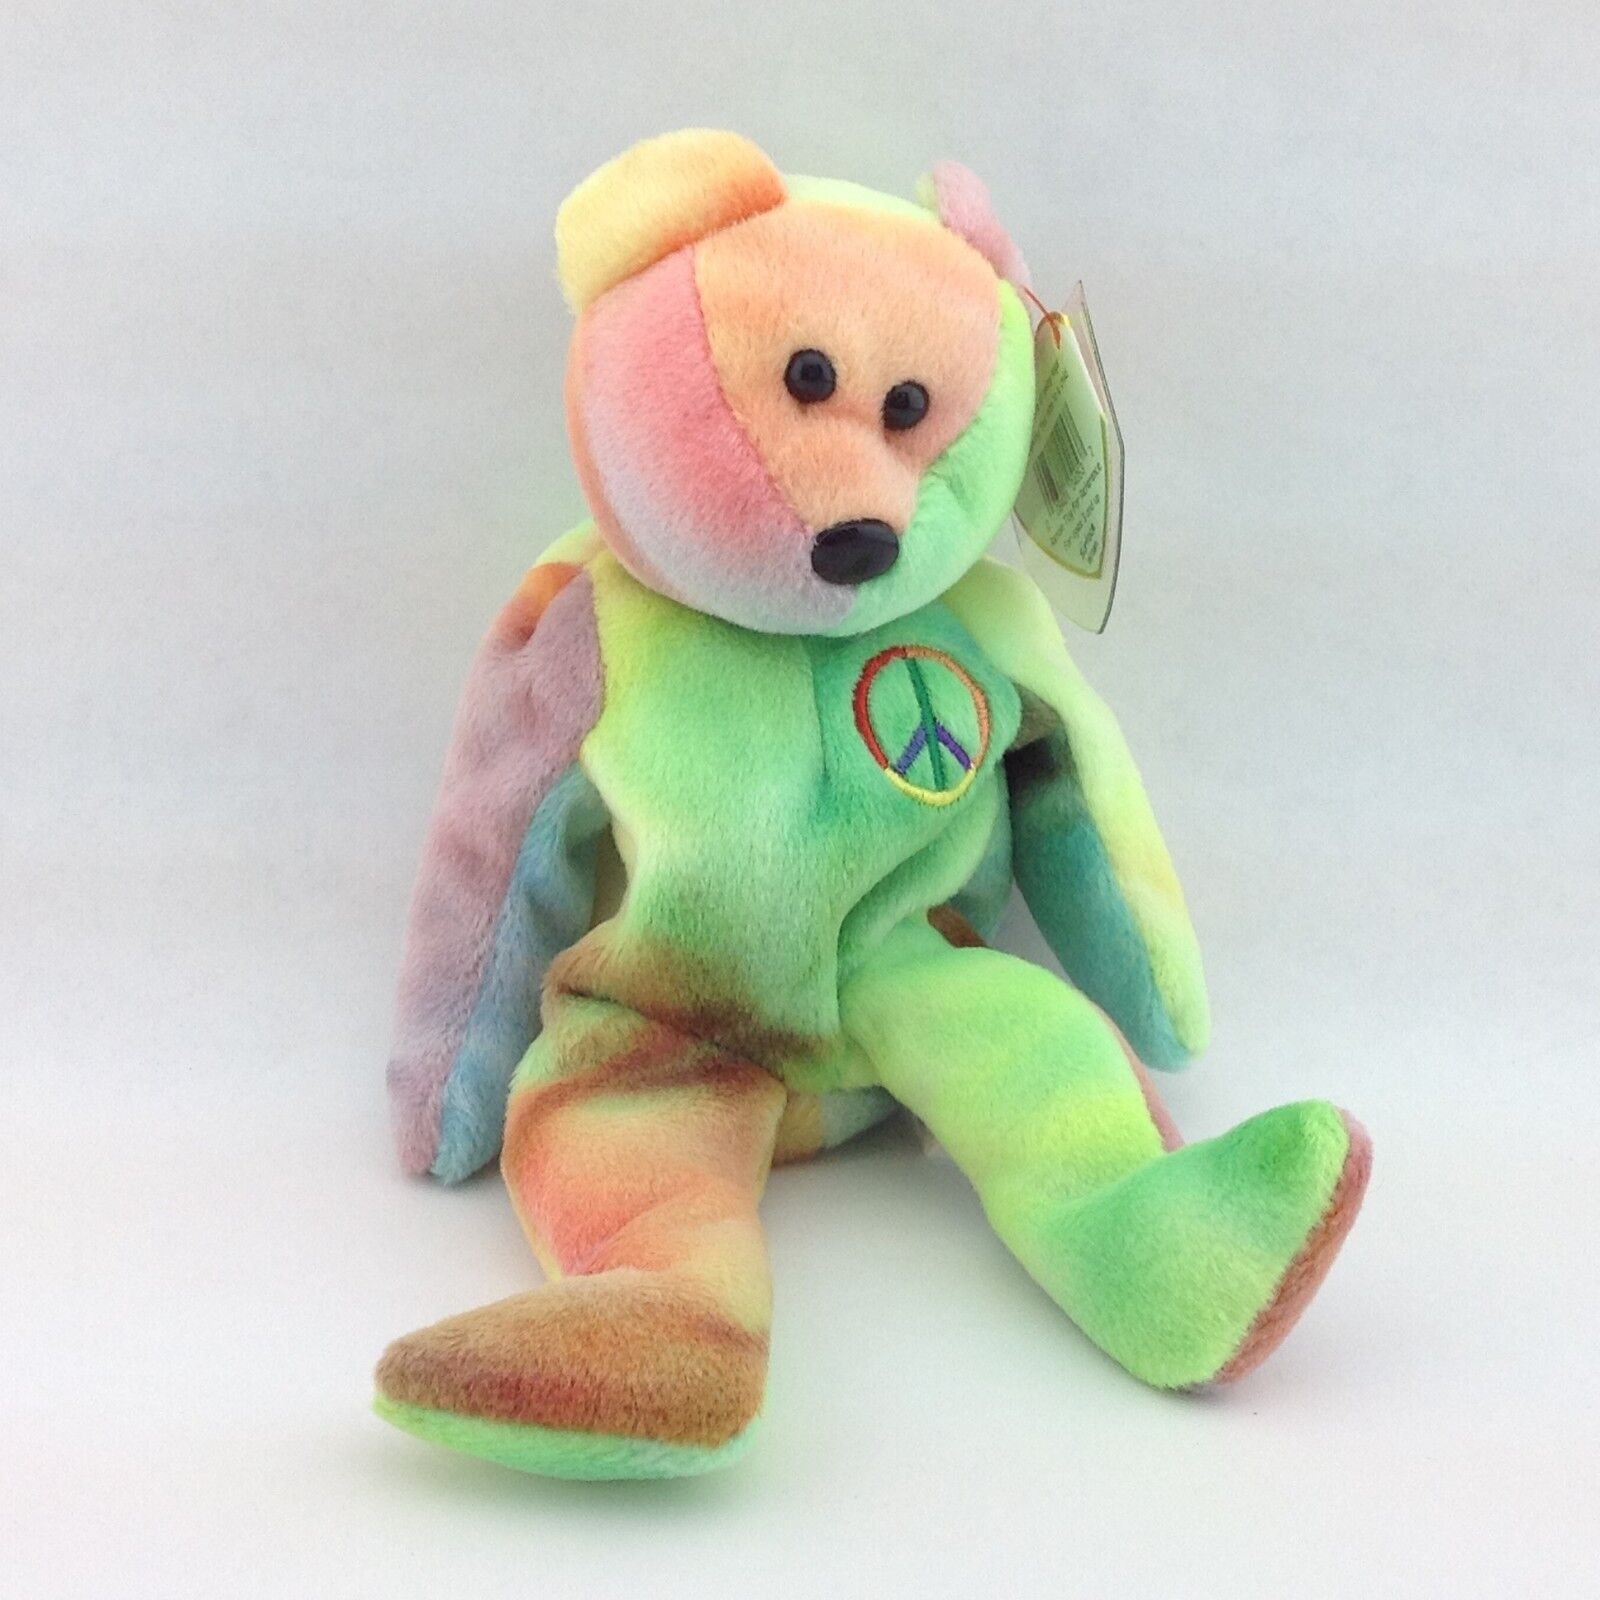 TY Beanie Baby 1996 PEACE Bear with Errors and P.E. Pellets MINT